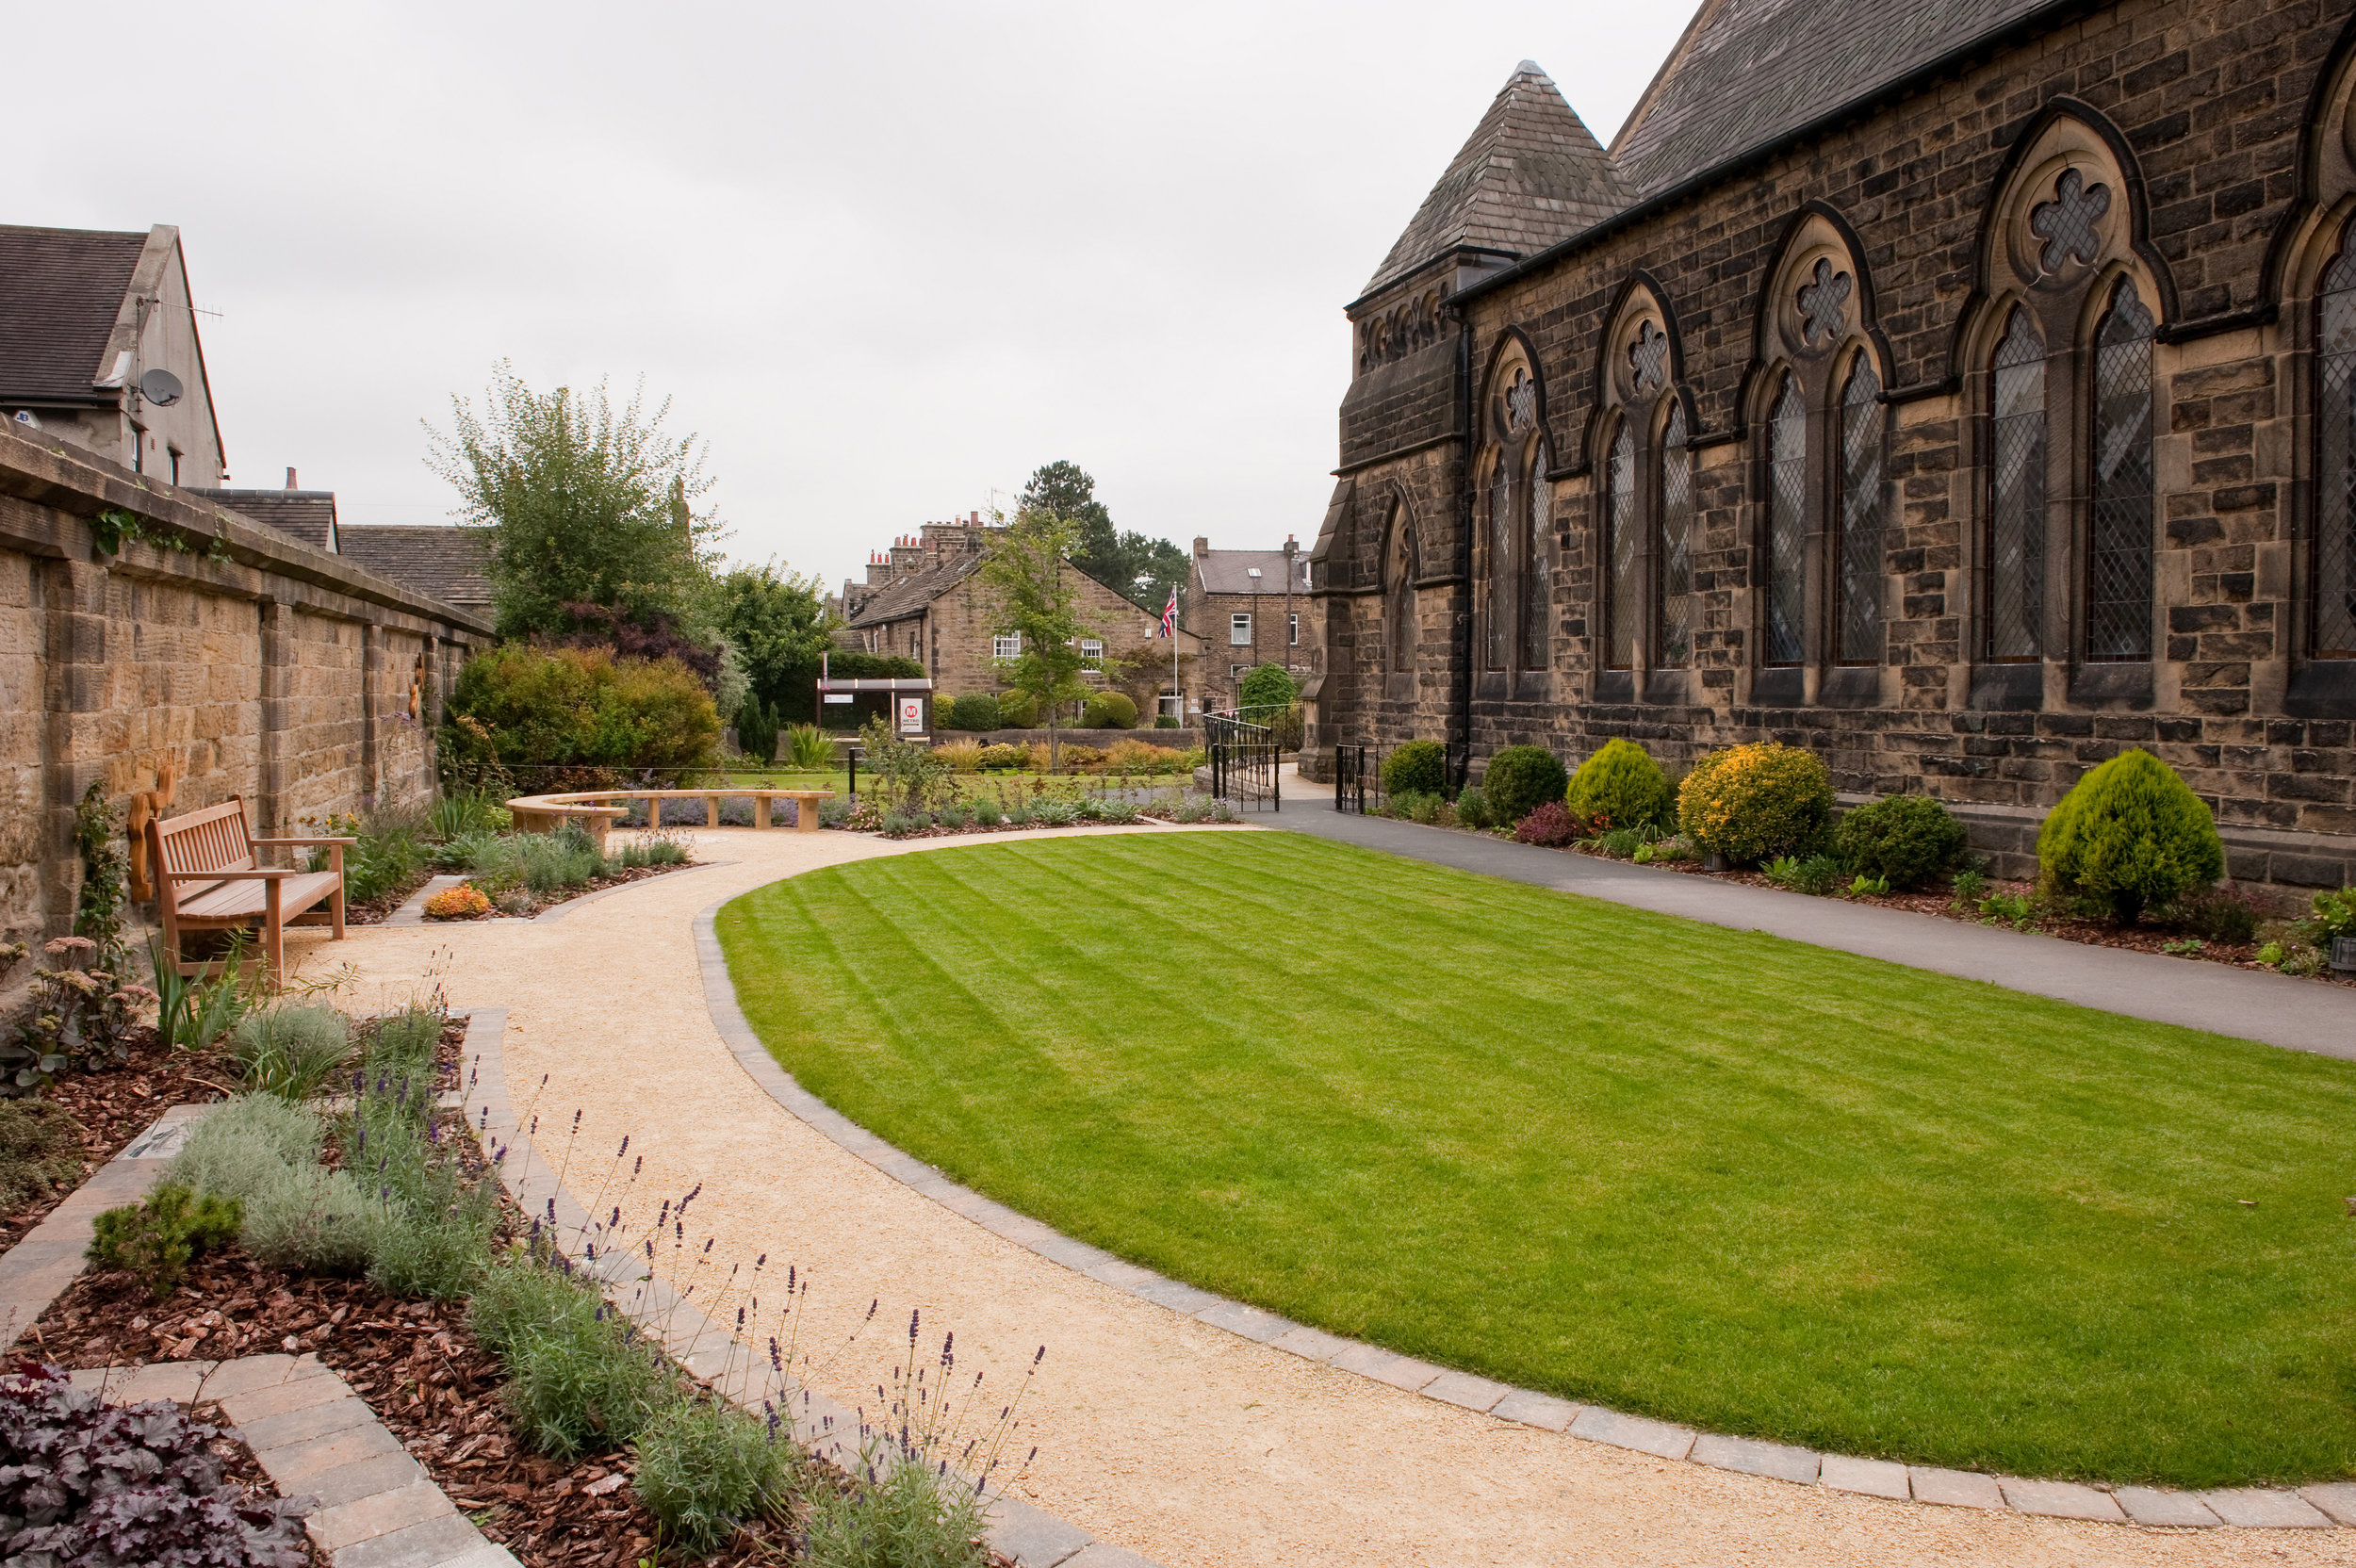 The main garden path in self-binding gravel forms a curve around the new lawn used for summer picnics and games.